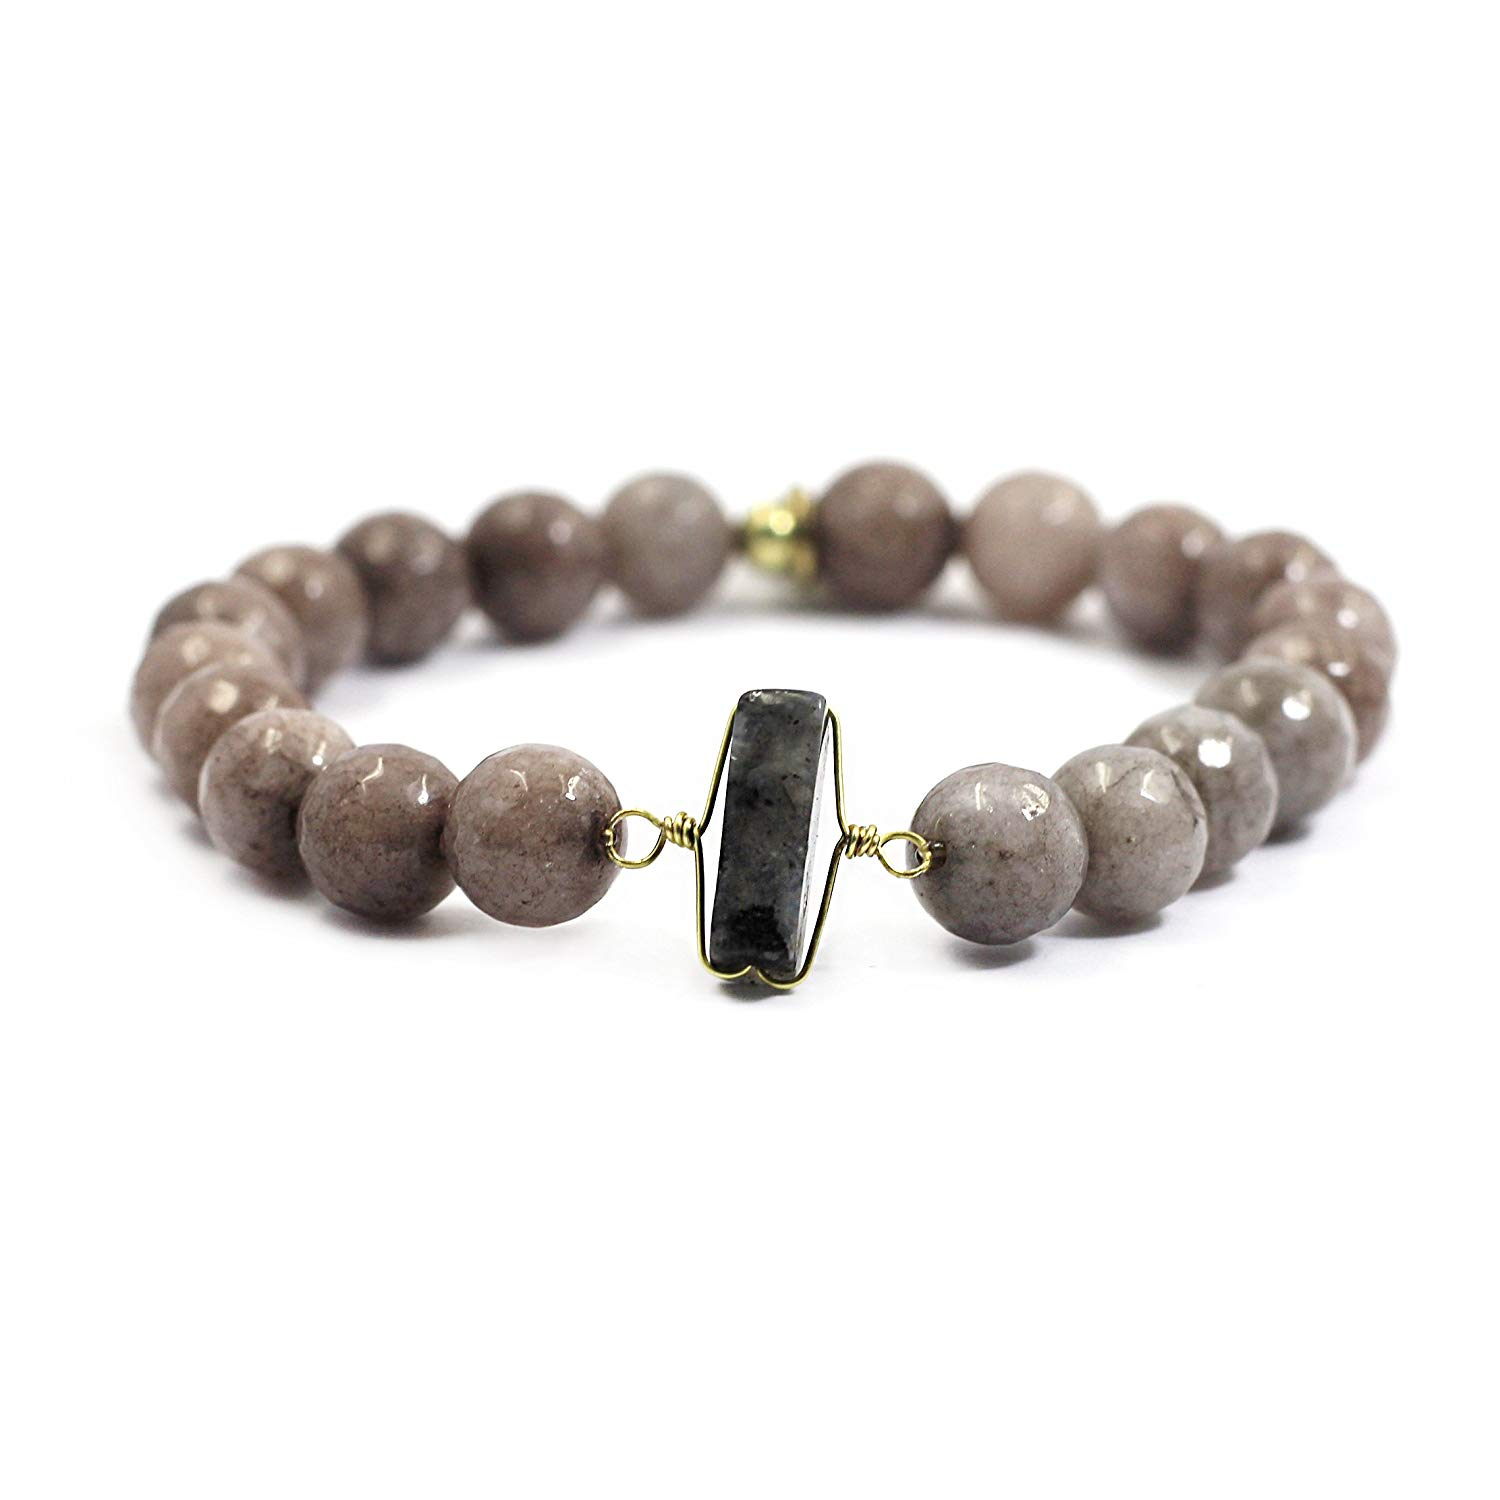 tom+alice Natural Gemstone 8MM Healing Beads Reiki Chakra Stretch Beaded Bracelets with Middle Ornament Womens Fashion (Naked-Gray Gold)